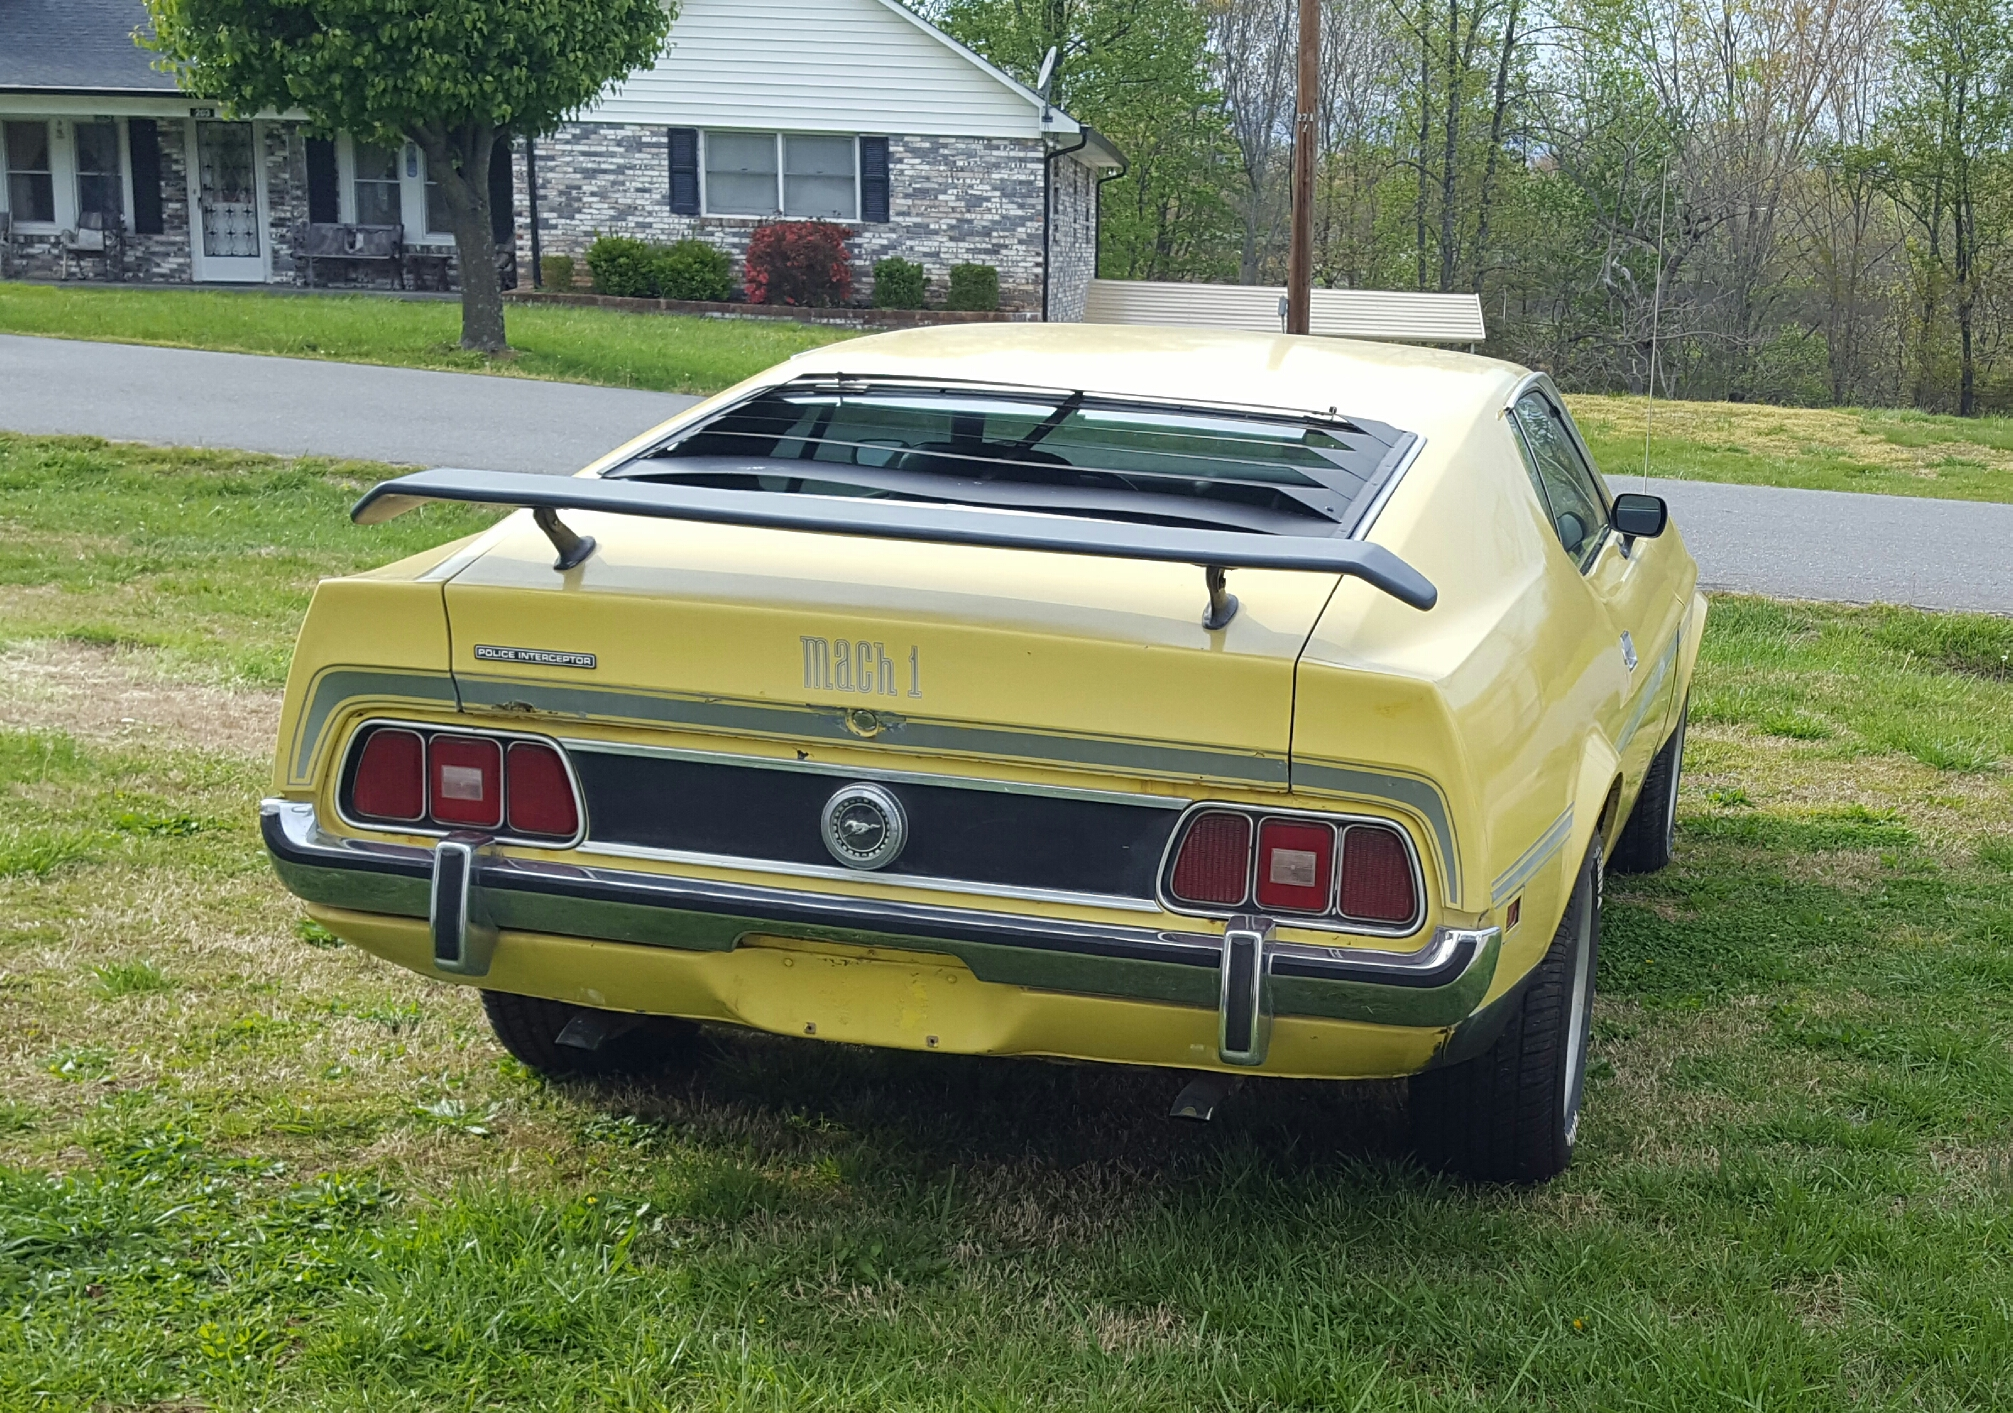 71 Mach 1 Mustang Rear End